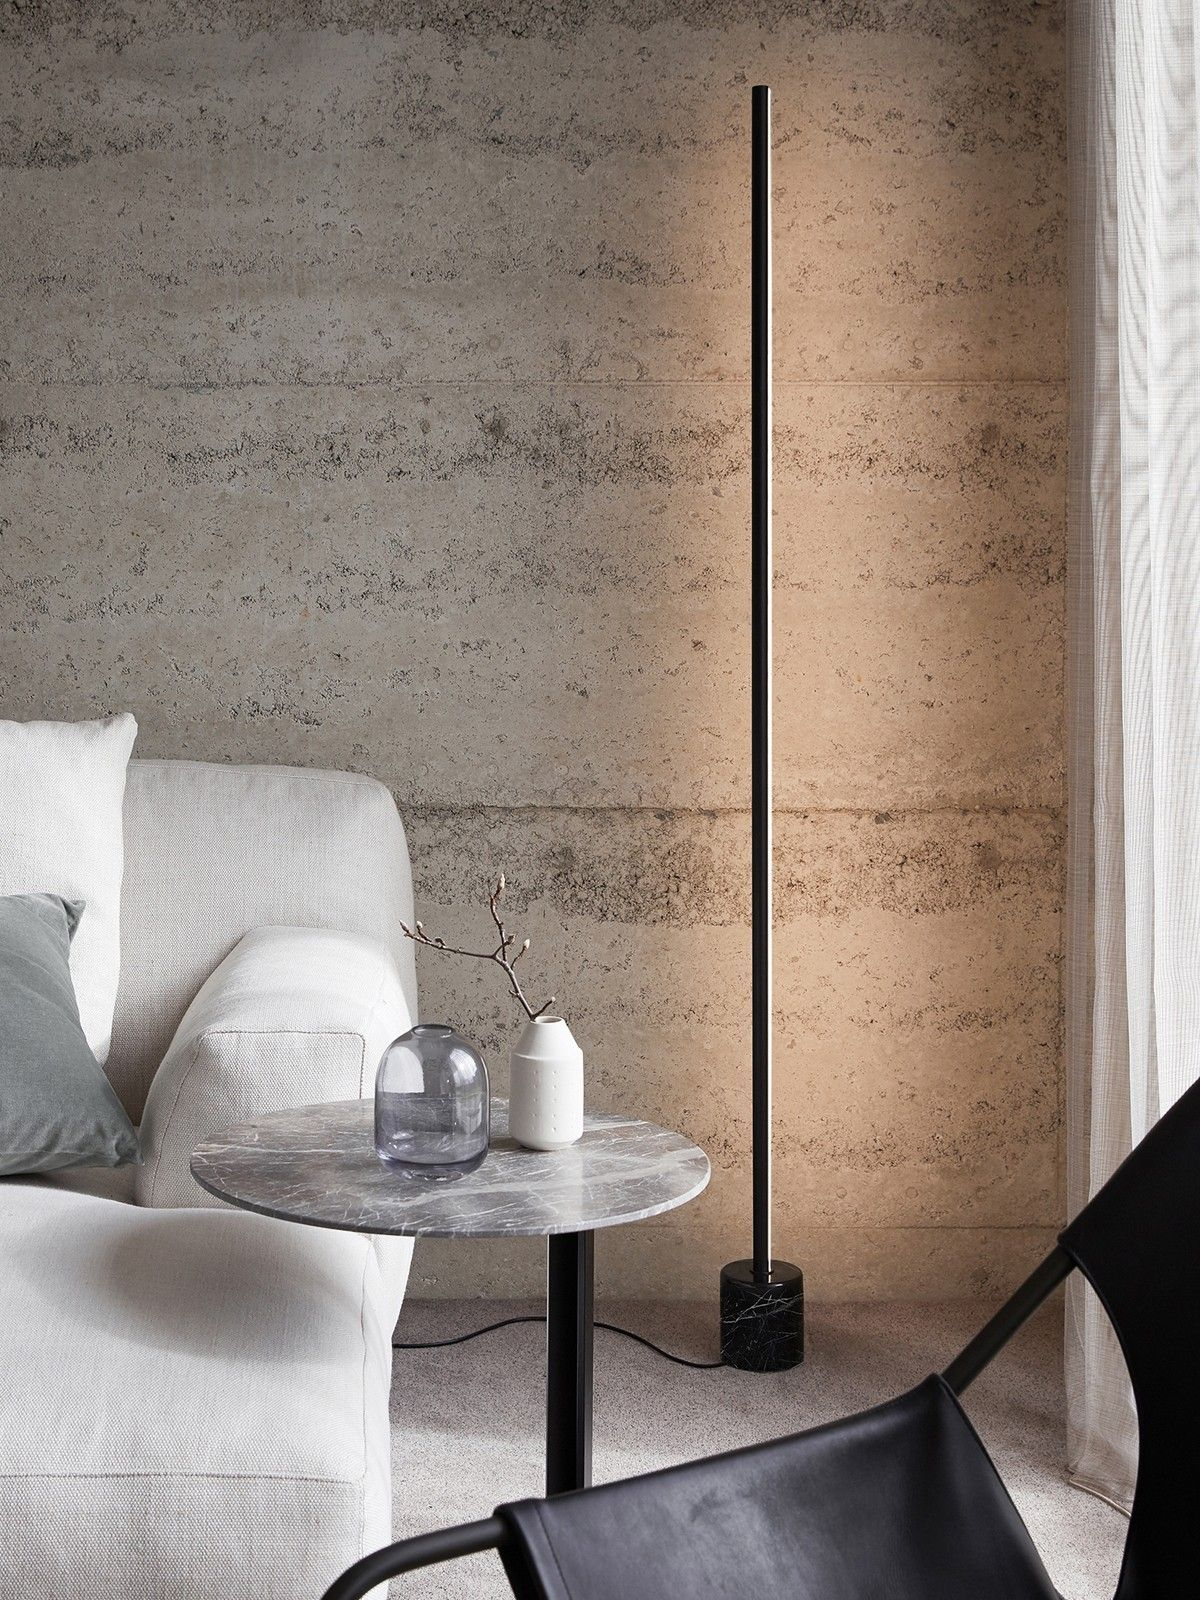 10 of the best lighting fixtures that won't break the